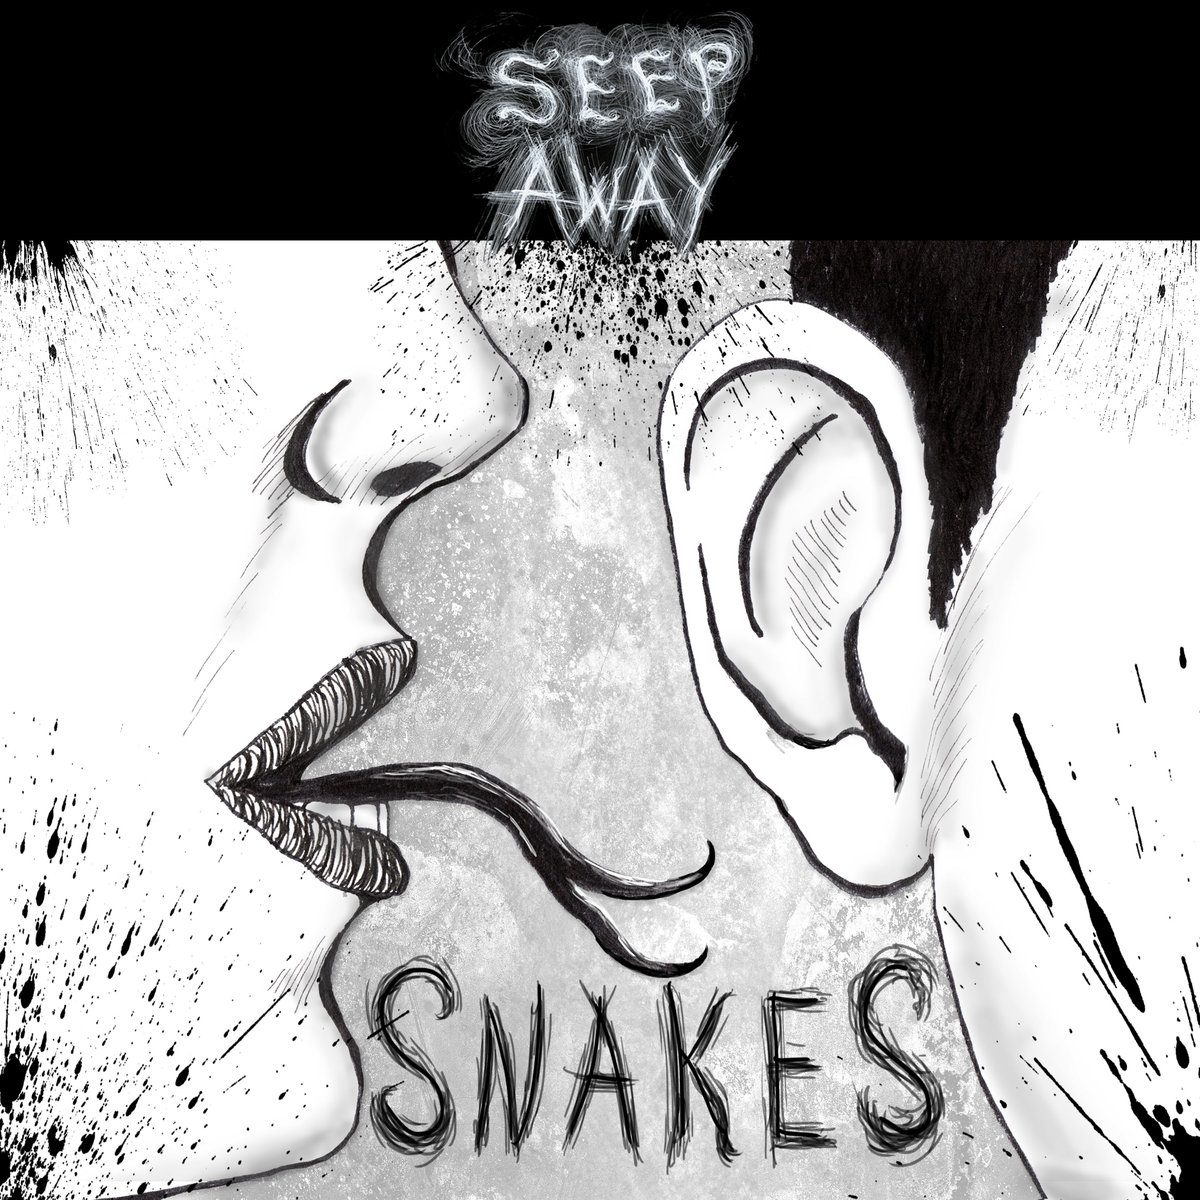 SEEP AWAY - Snakes (Single)